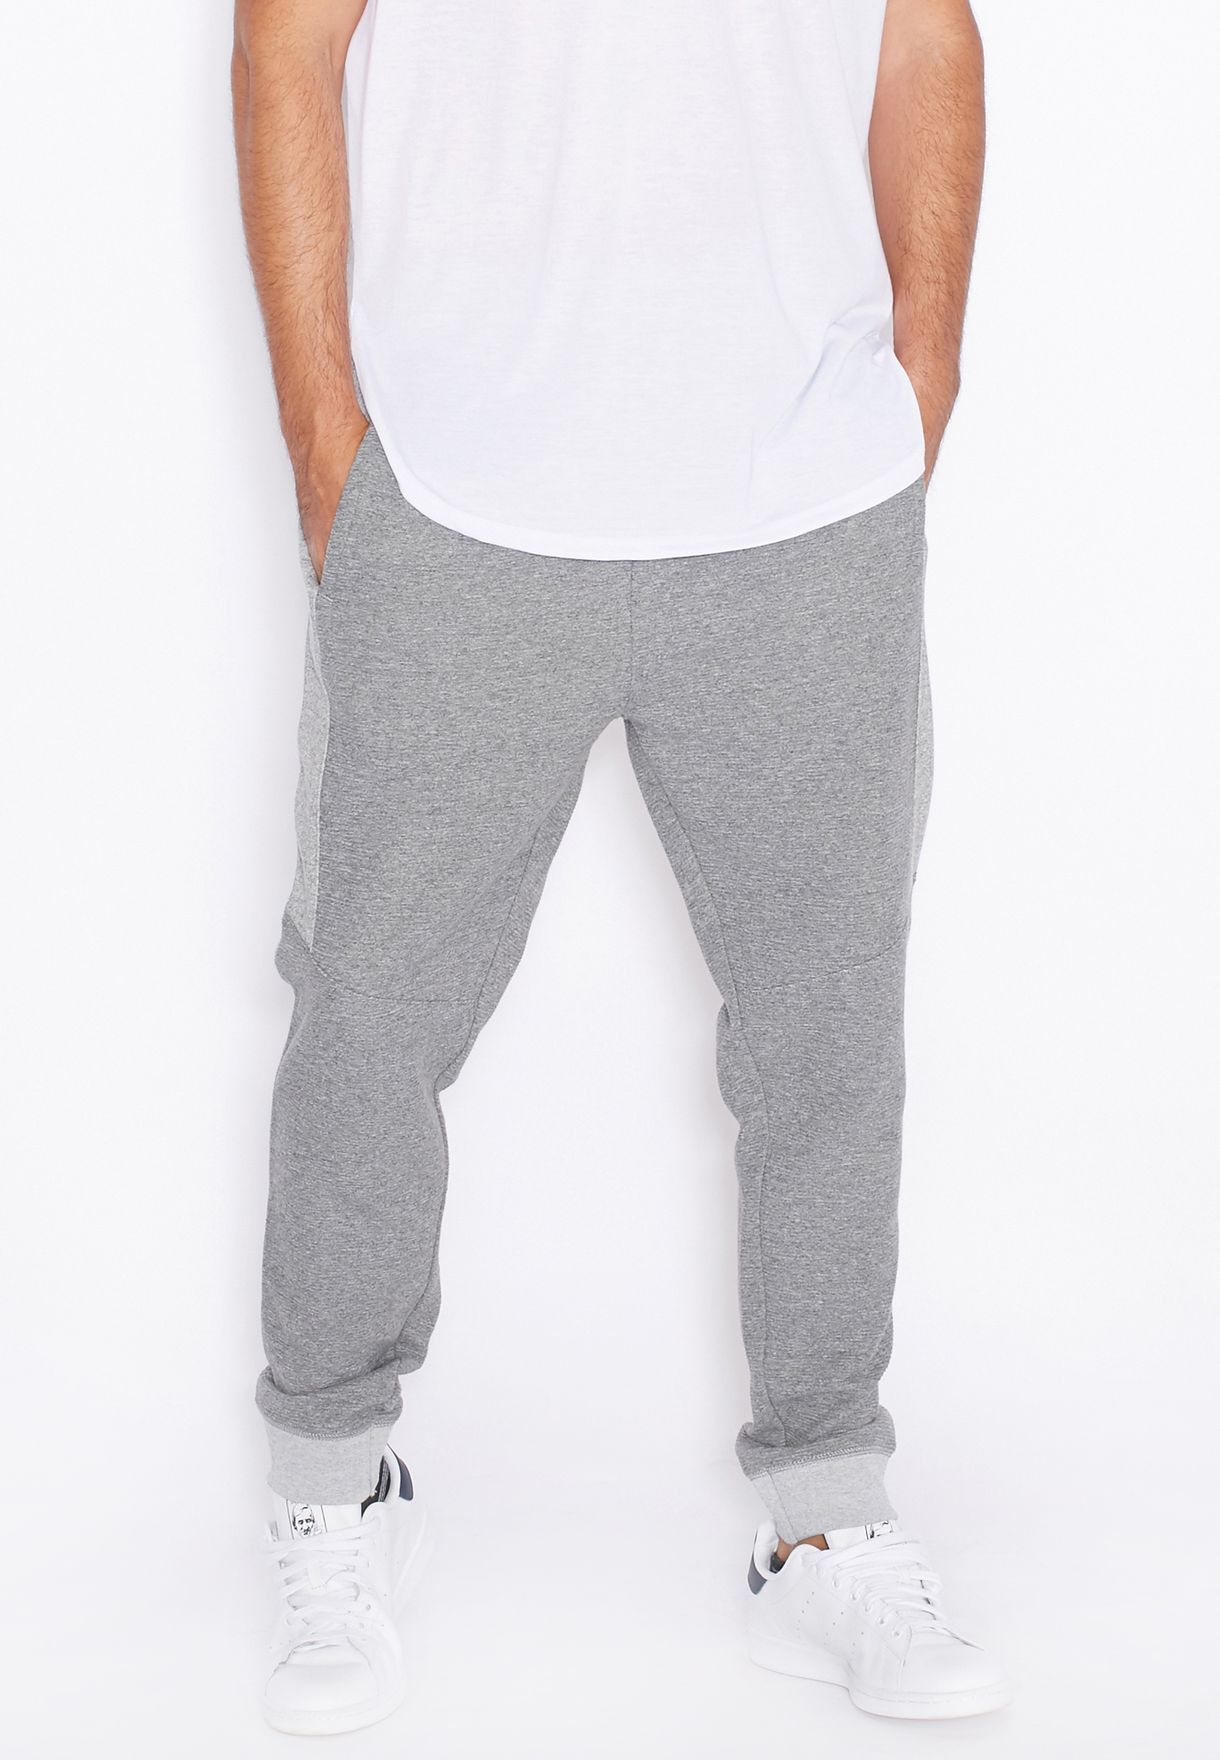 a6de447d Shop Topman grey Ottoman Cuffed Sweatpants 68J12MGRY/68J44MGRY for ...